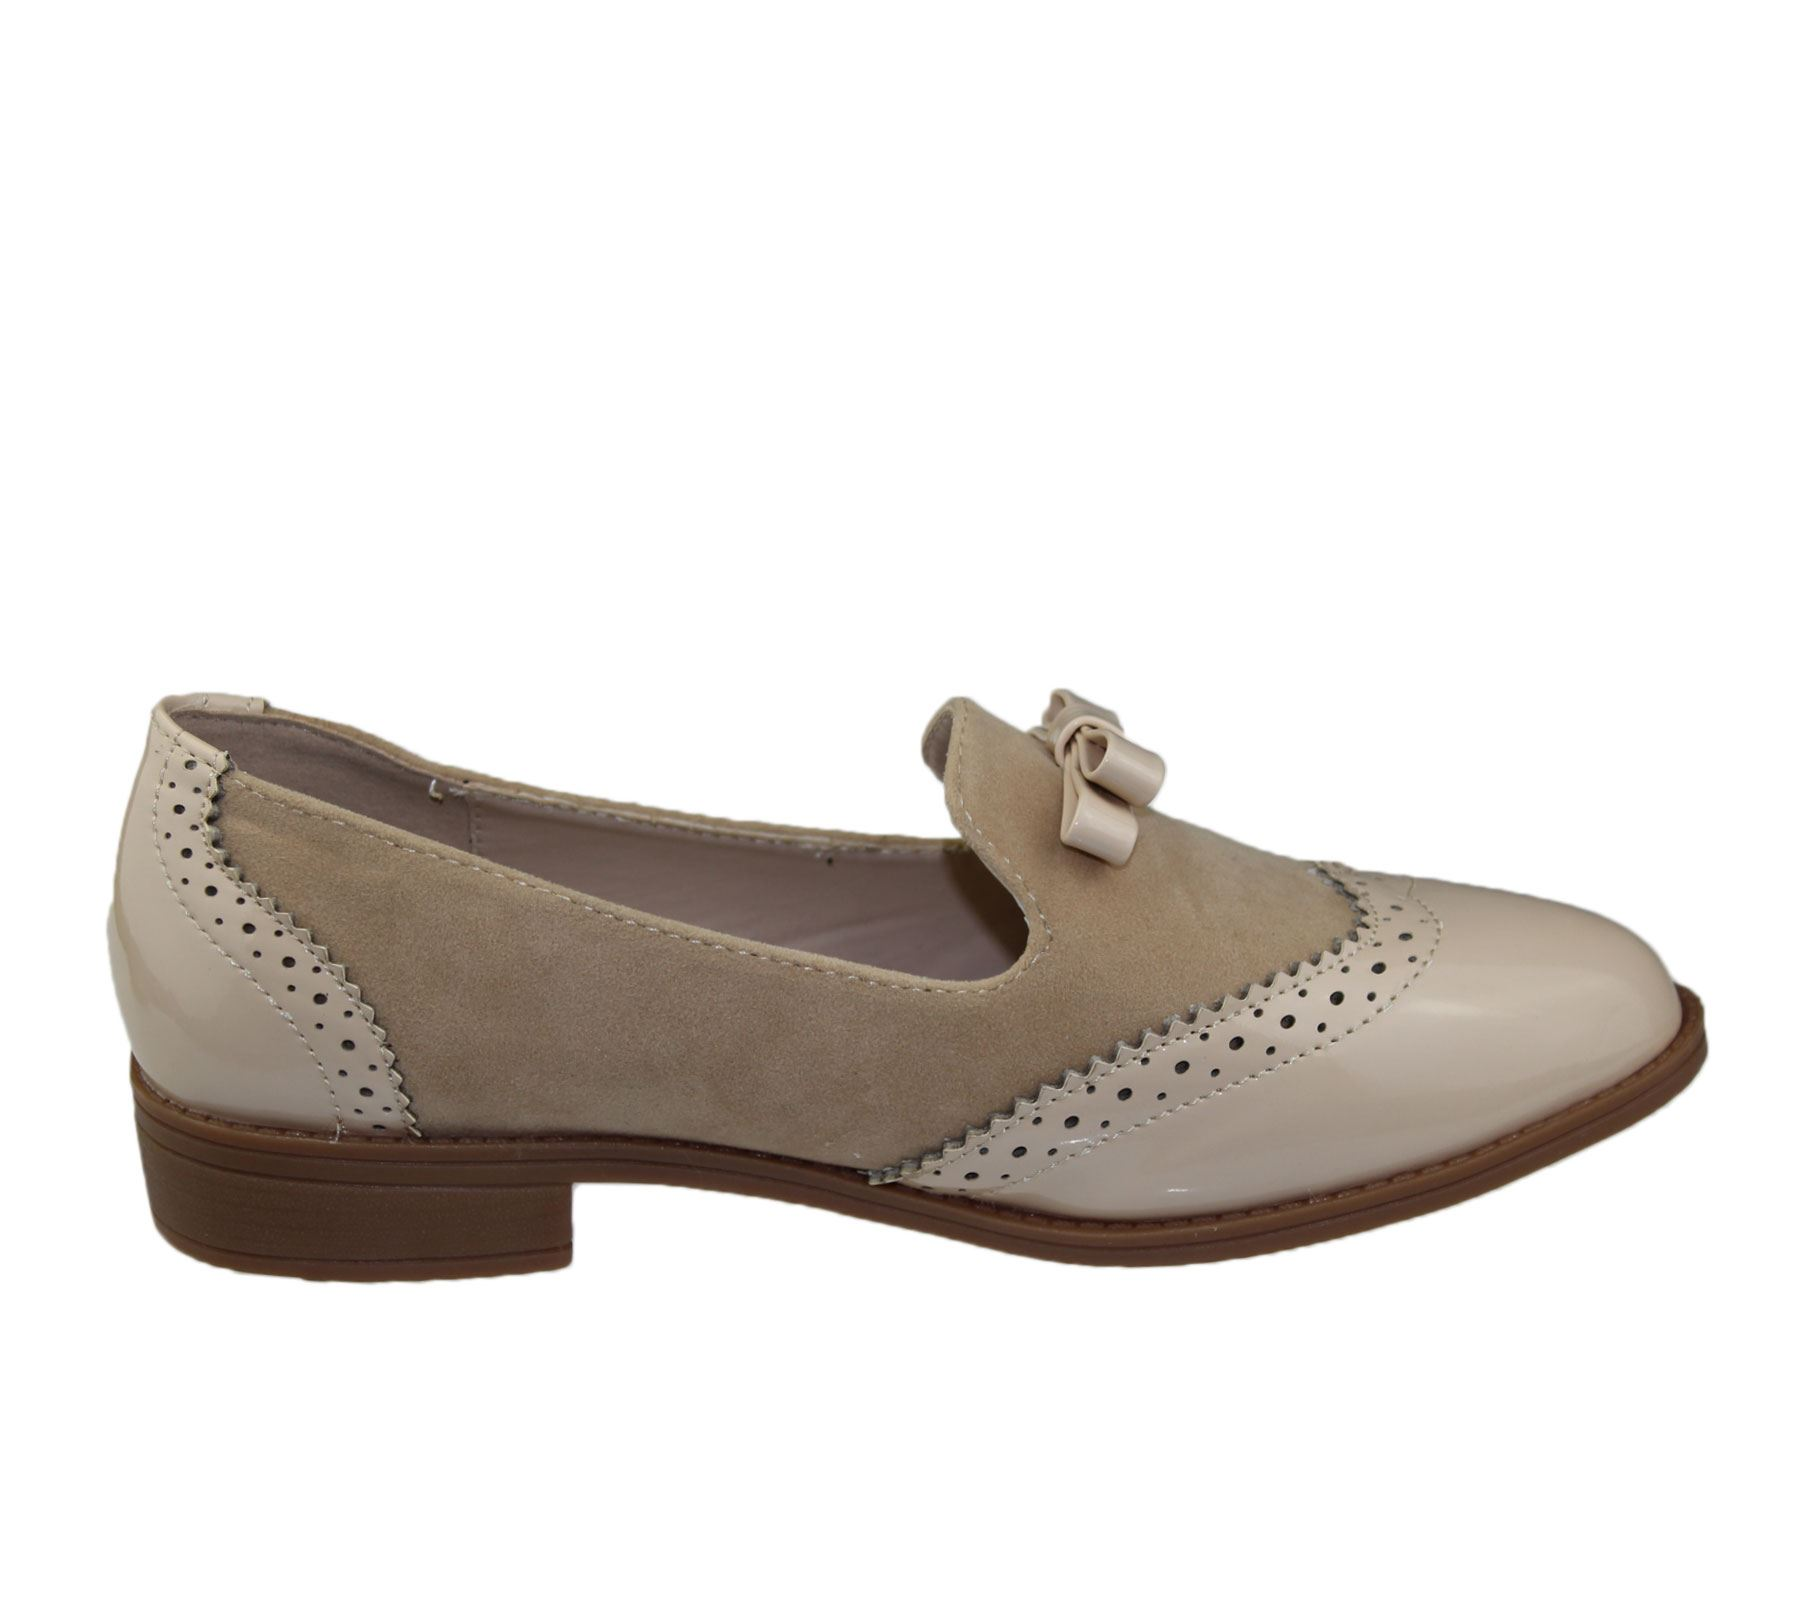 d24380b4d28 Womens Slip On Shoes Ladies Patent Suede Flat Oxford Loafers Brogues ...